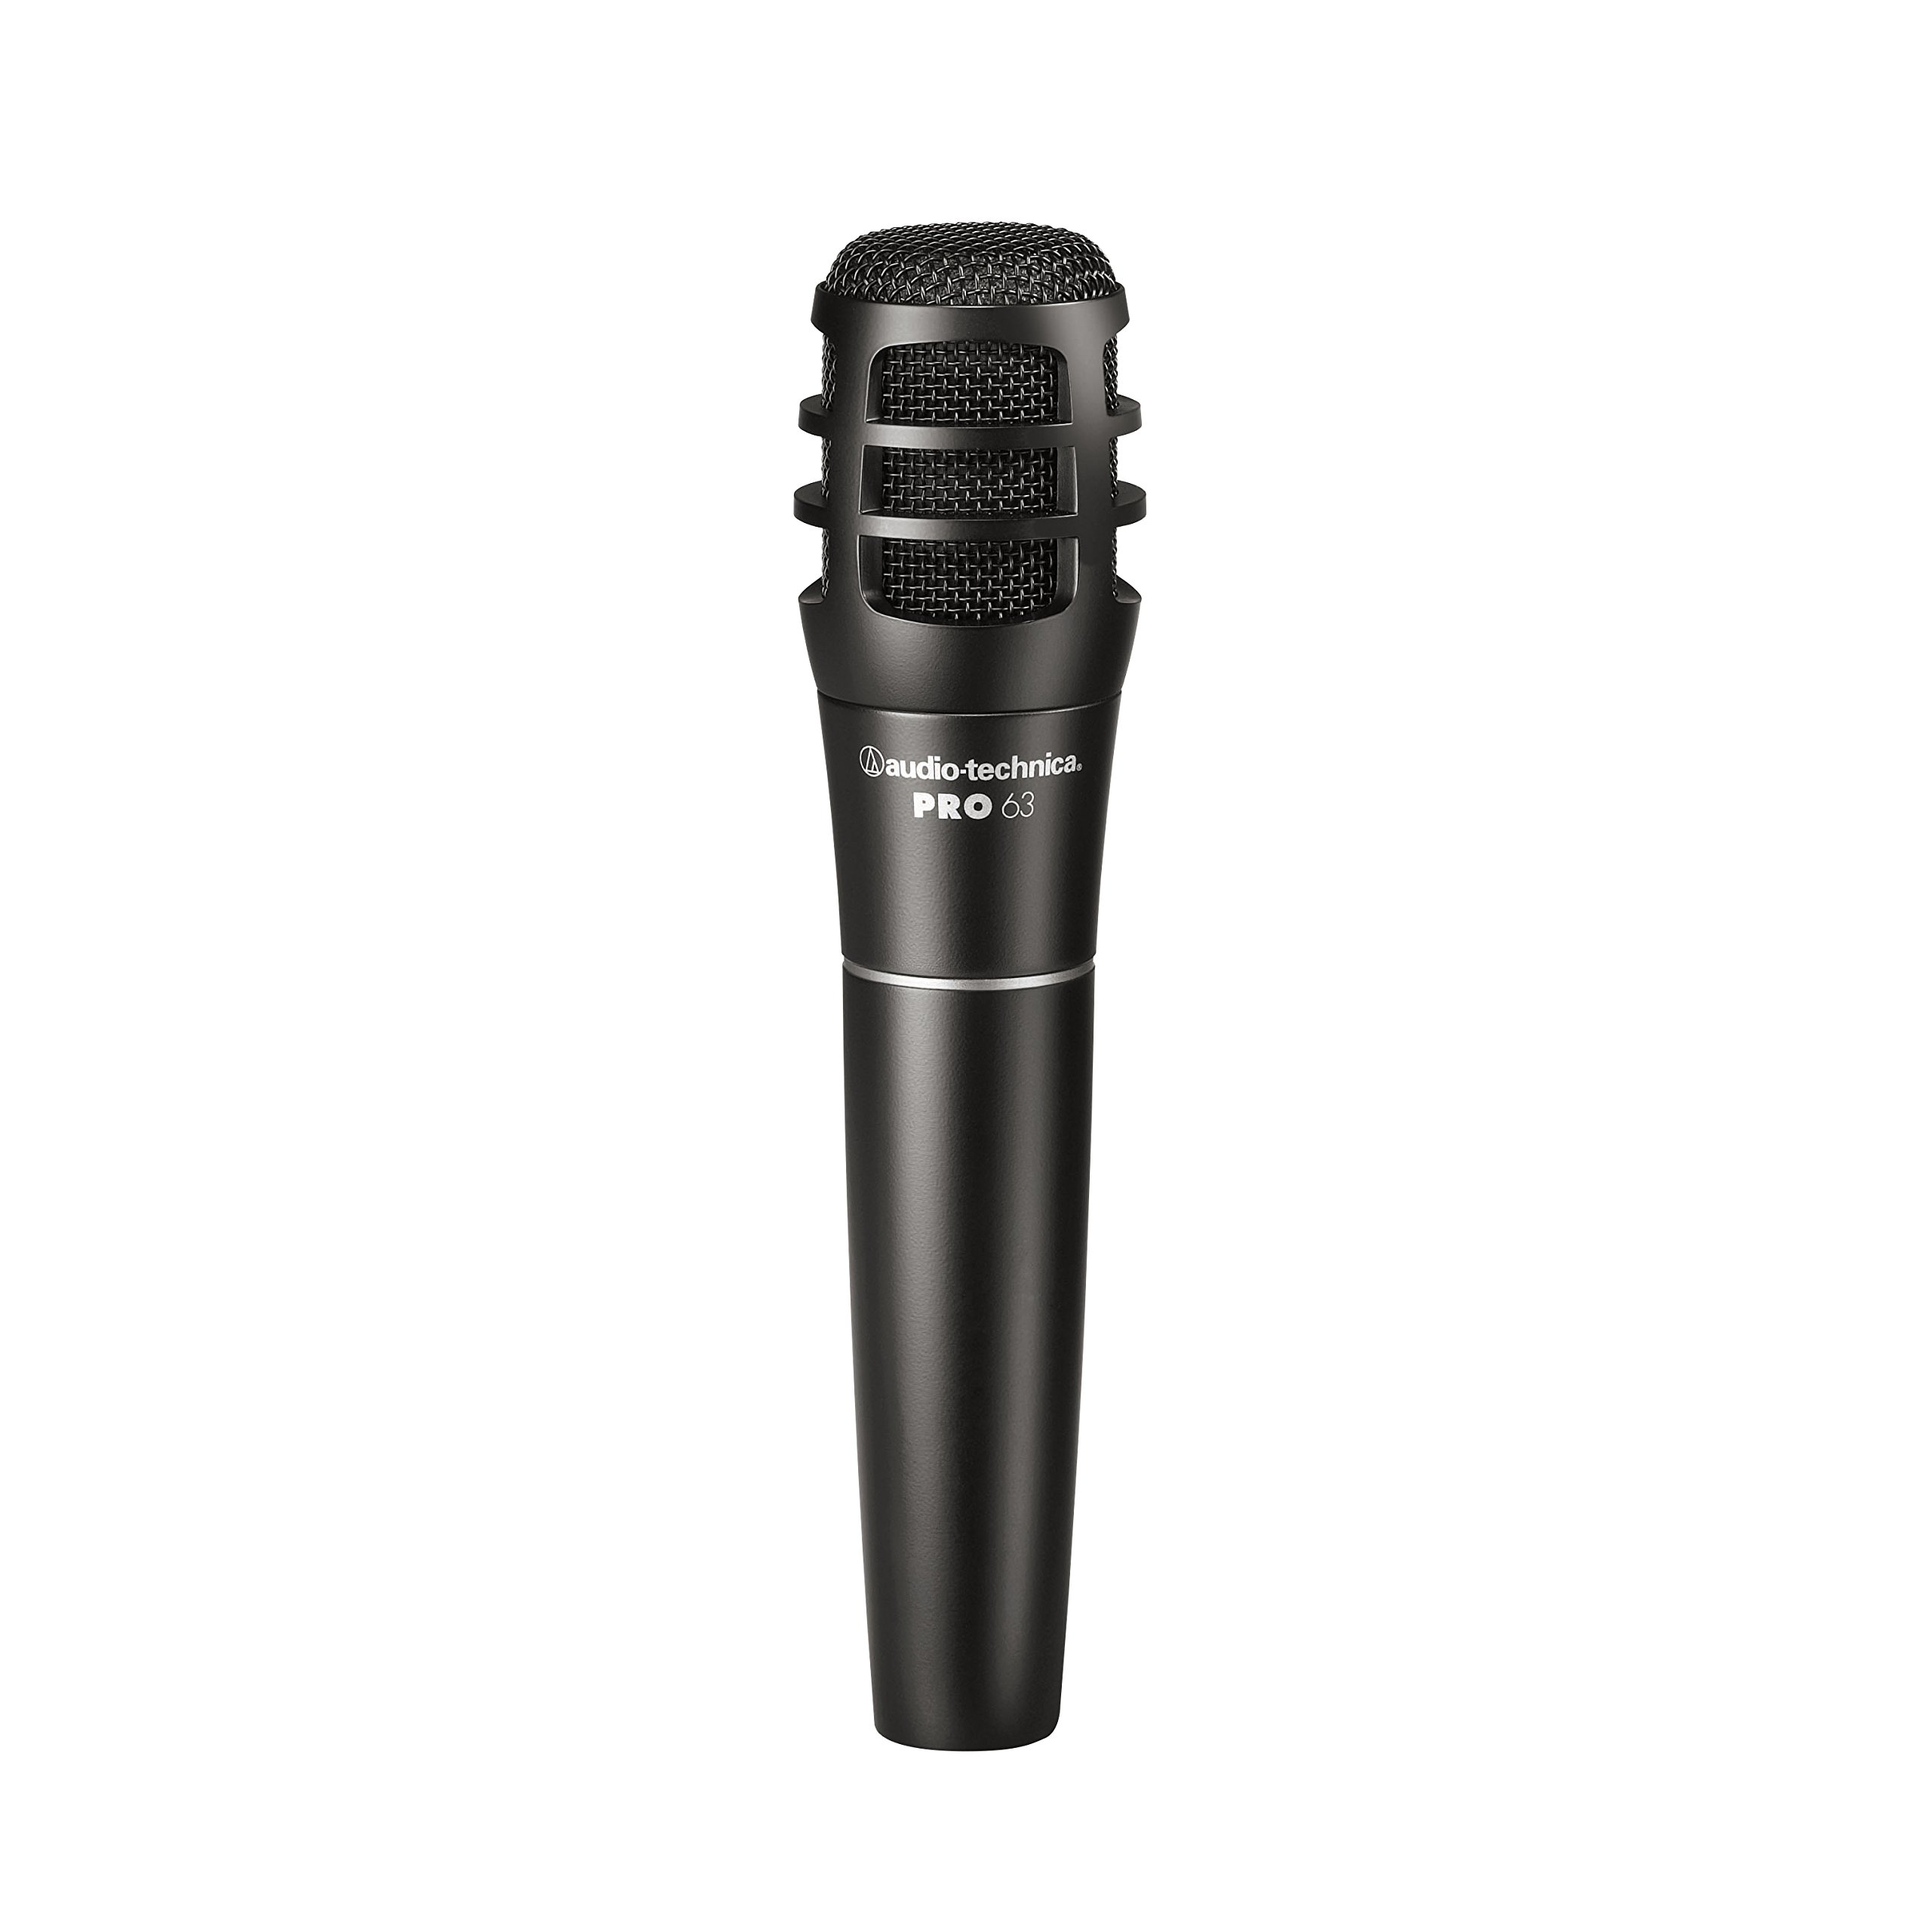 Audio-Technica PRO 63 Cardioid Dynamic Instrument Microphone by Audio-Technica